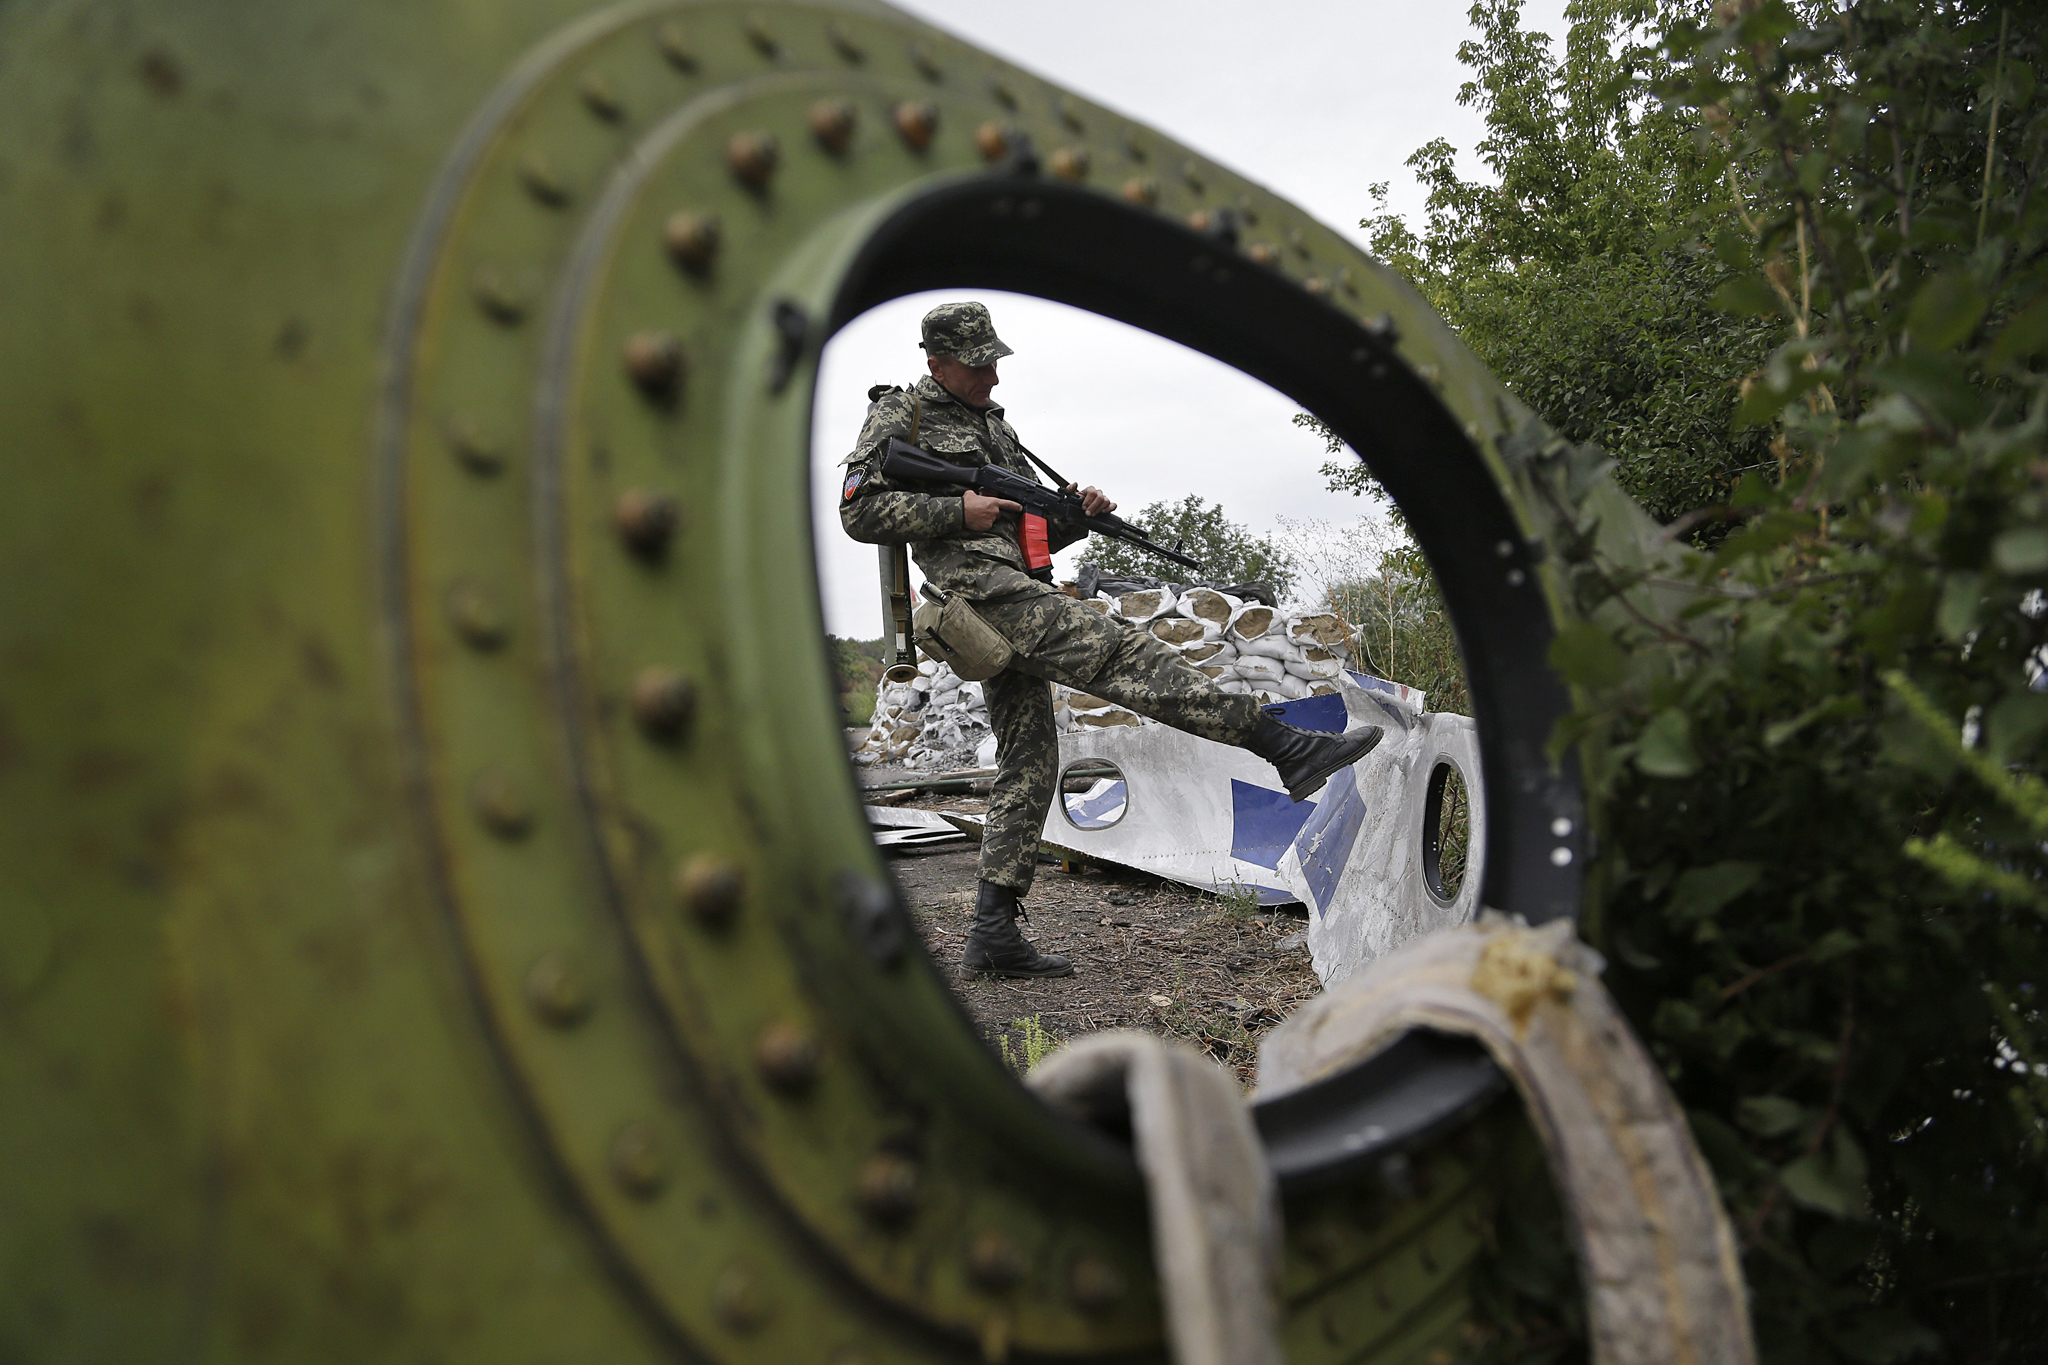 "A Pro-Russian rebel looks at pieces of the Malaysia Airlines Flight 17 plane near village of Rozsypne, eastern Ukraine, Tuesday, Sept. 9, 2014. The Dutch team investigating the downing of Malaysia Airlines Flight 17 over Eastern Ukraine says the crash was likely caused by the plane being hit by multiple ""high-energy objects from outside the aircraft."" The preliminary report published Tuesday by the Dutch Safety Board stopped short of saying the Boeing 777 was shot down by a surface-to-air missile, but its findings appear to point to that conclusion. (AP Photo/Sergei Grits)"